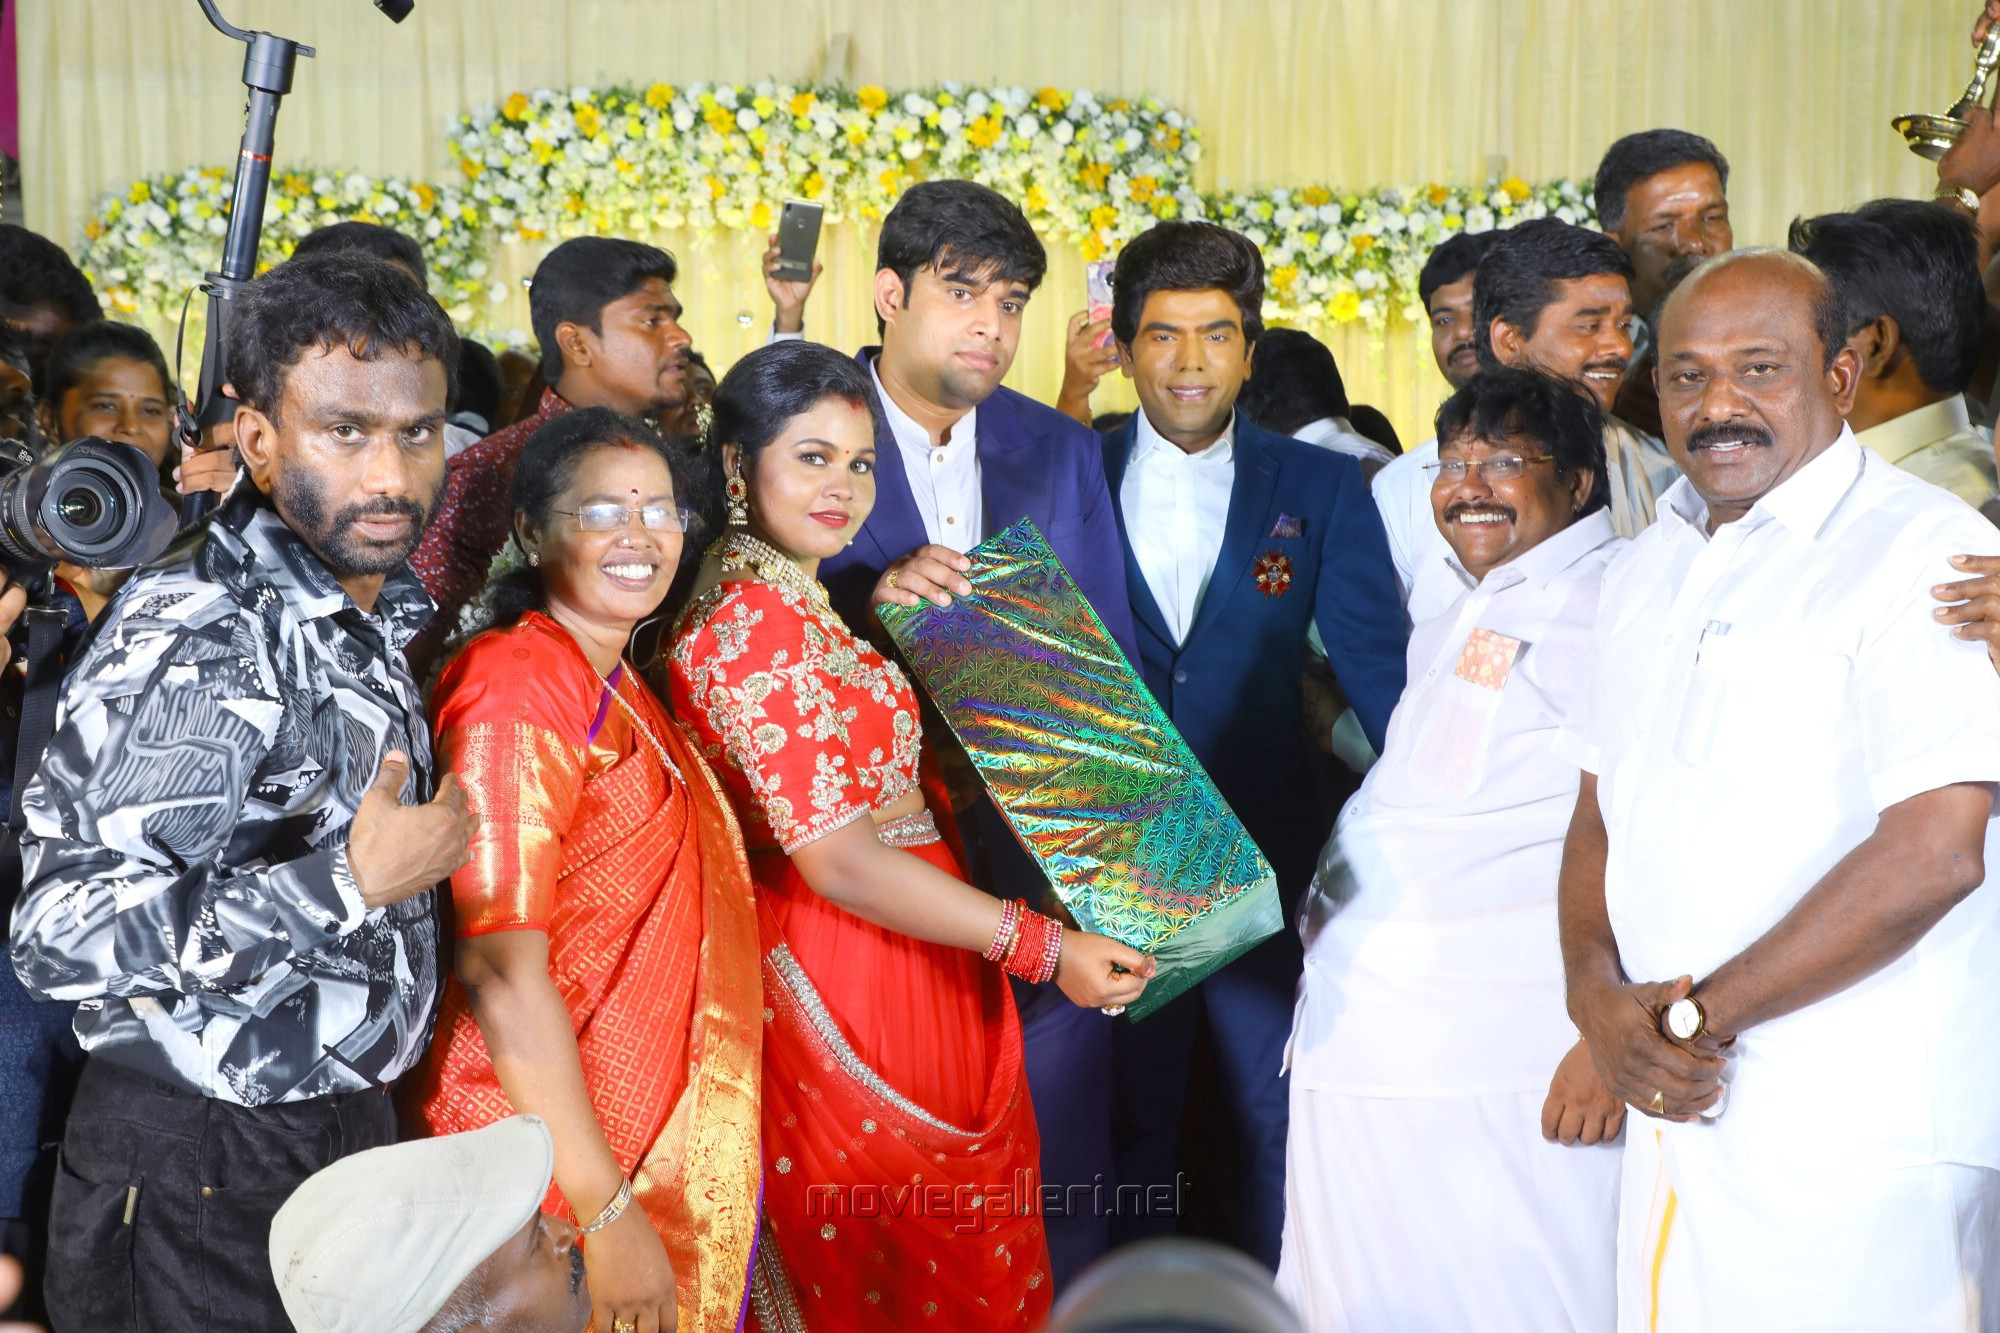 Legend Saravana Stores owner Saravanan @ Salem RR Briyani Tamilselvan daughter Wedding Reception Stills